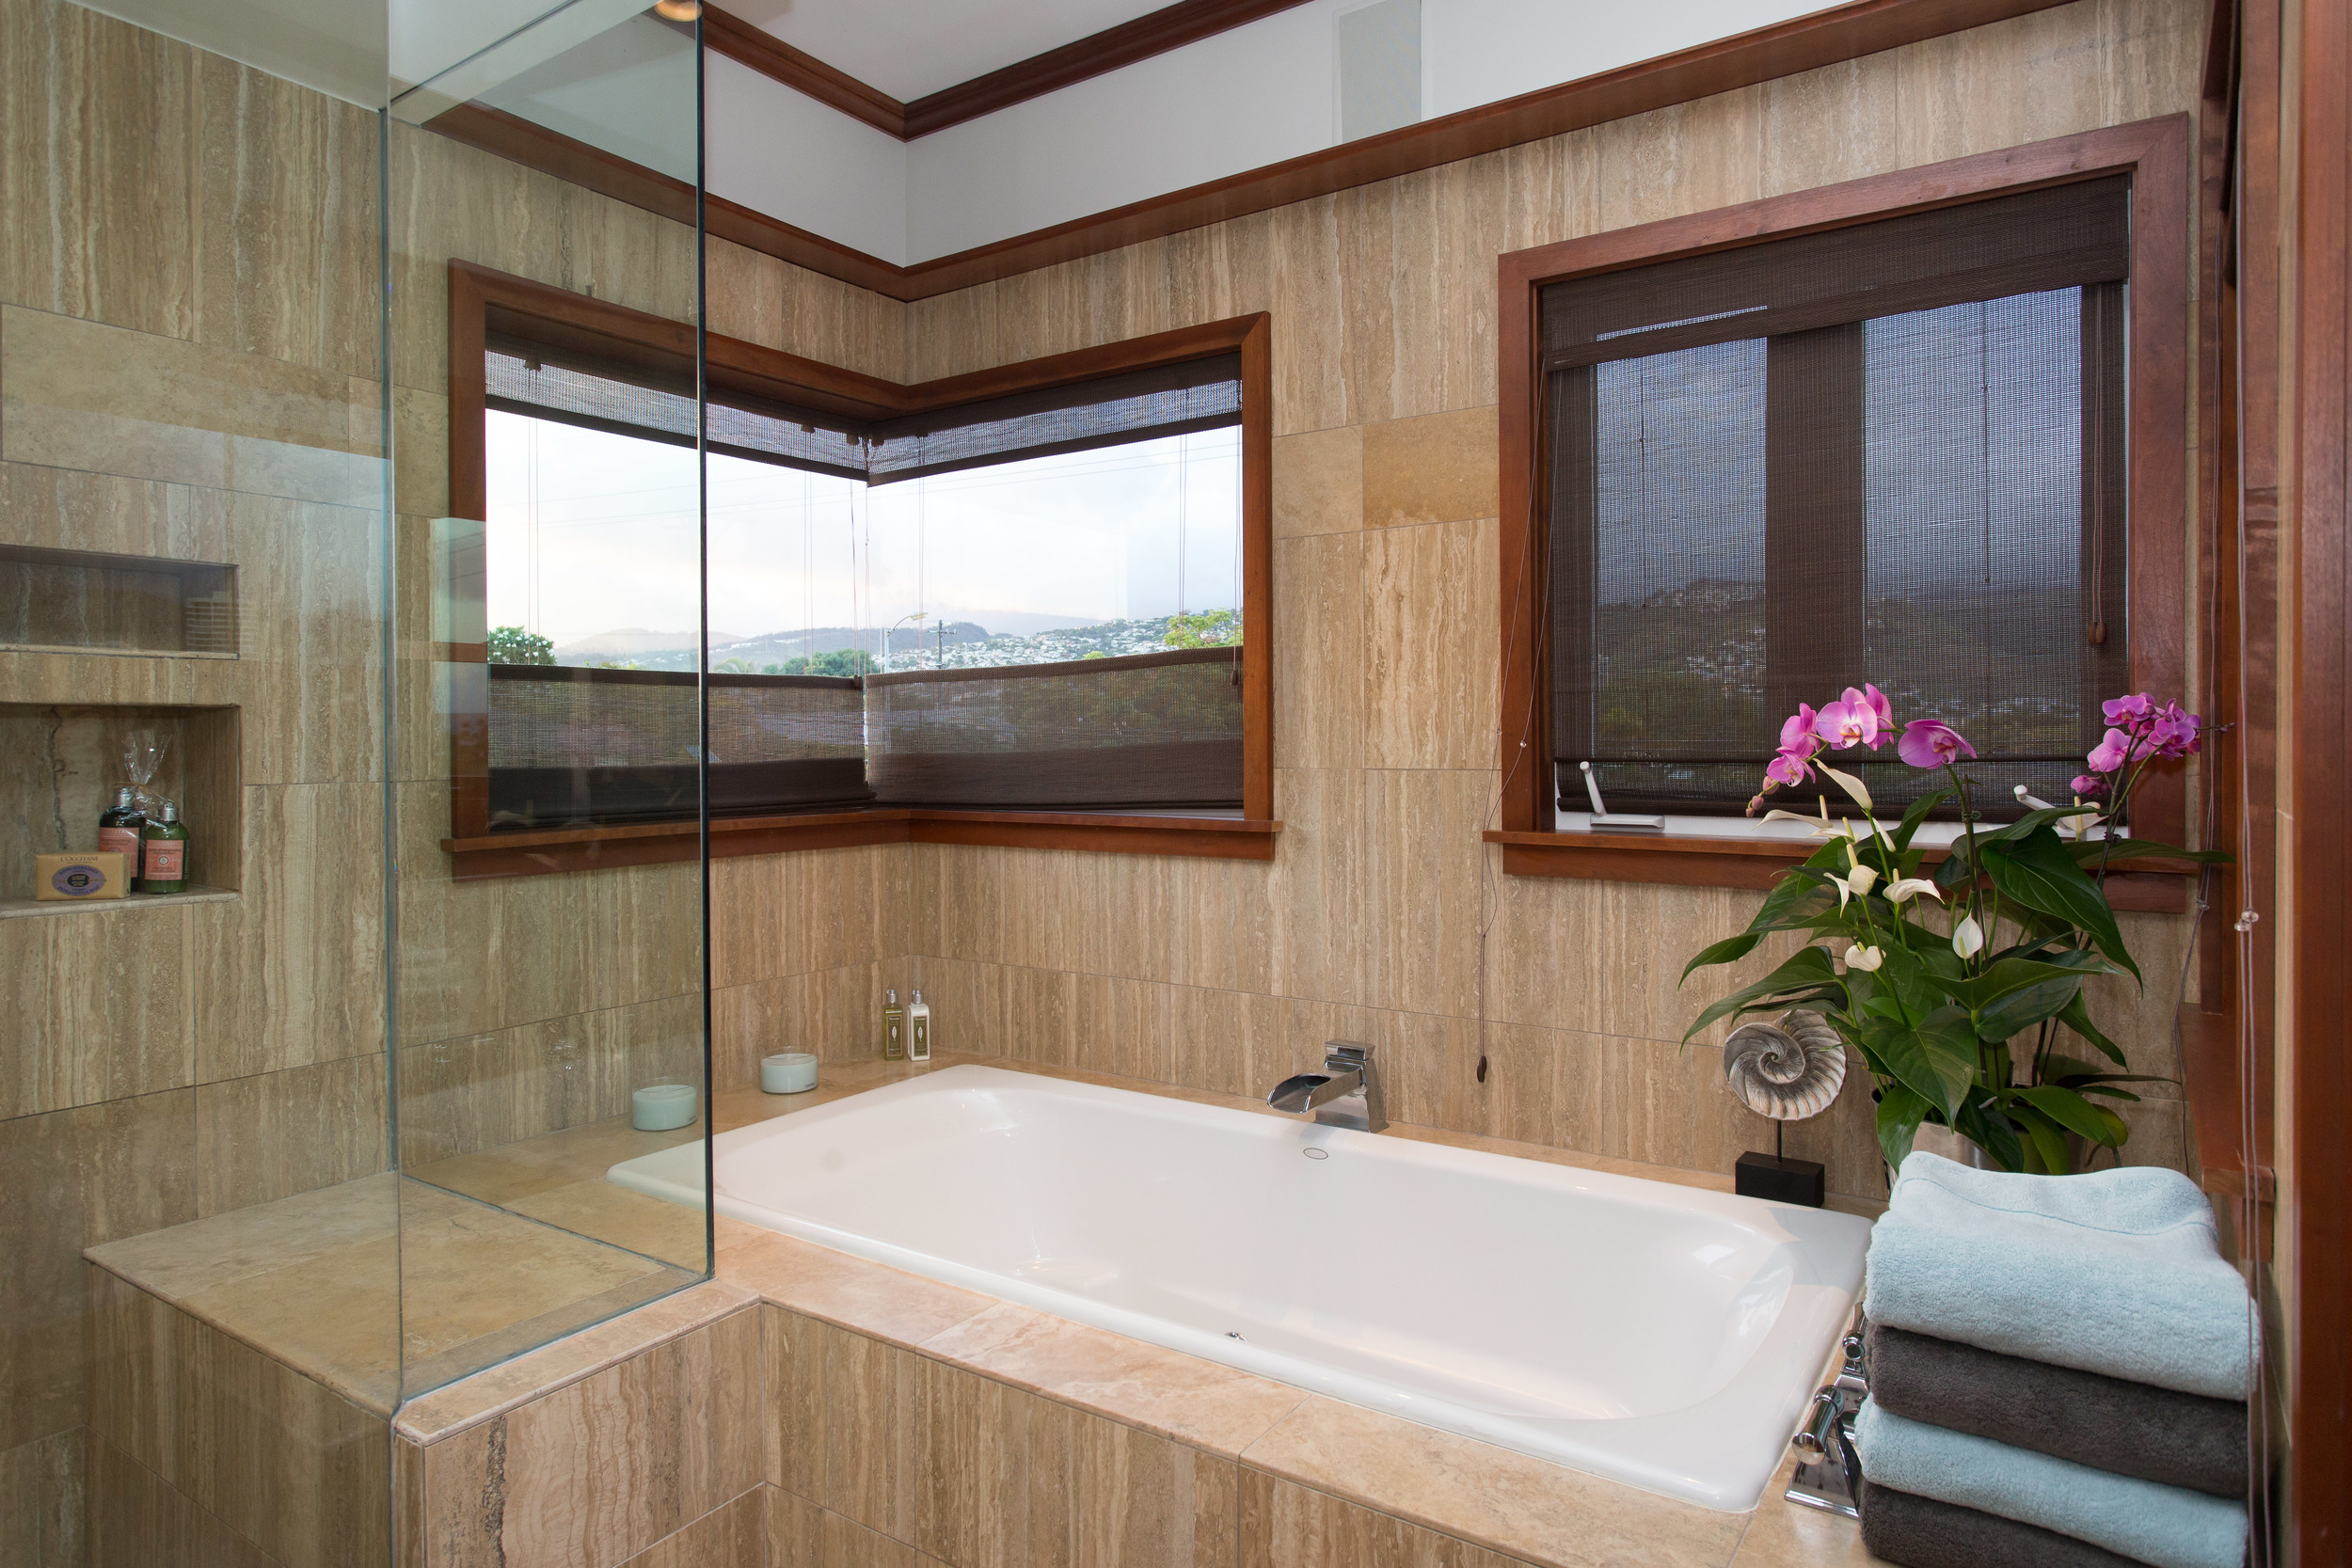 Luxury Home Staging Hawaii, Home Staging Hawaii, Inouye Interiors,Best Home Stagers Hawaii, Home Stagers in Hawaii, Stagers Hawaii, Home Stager Hawaii, Luxury Home Stager Hawaii